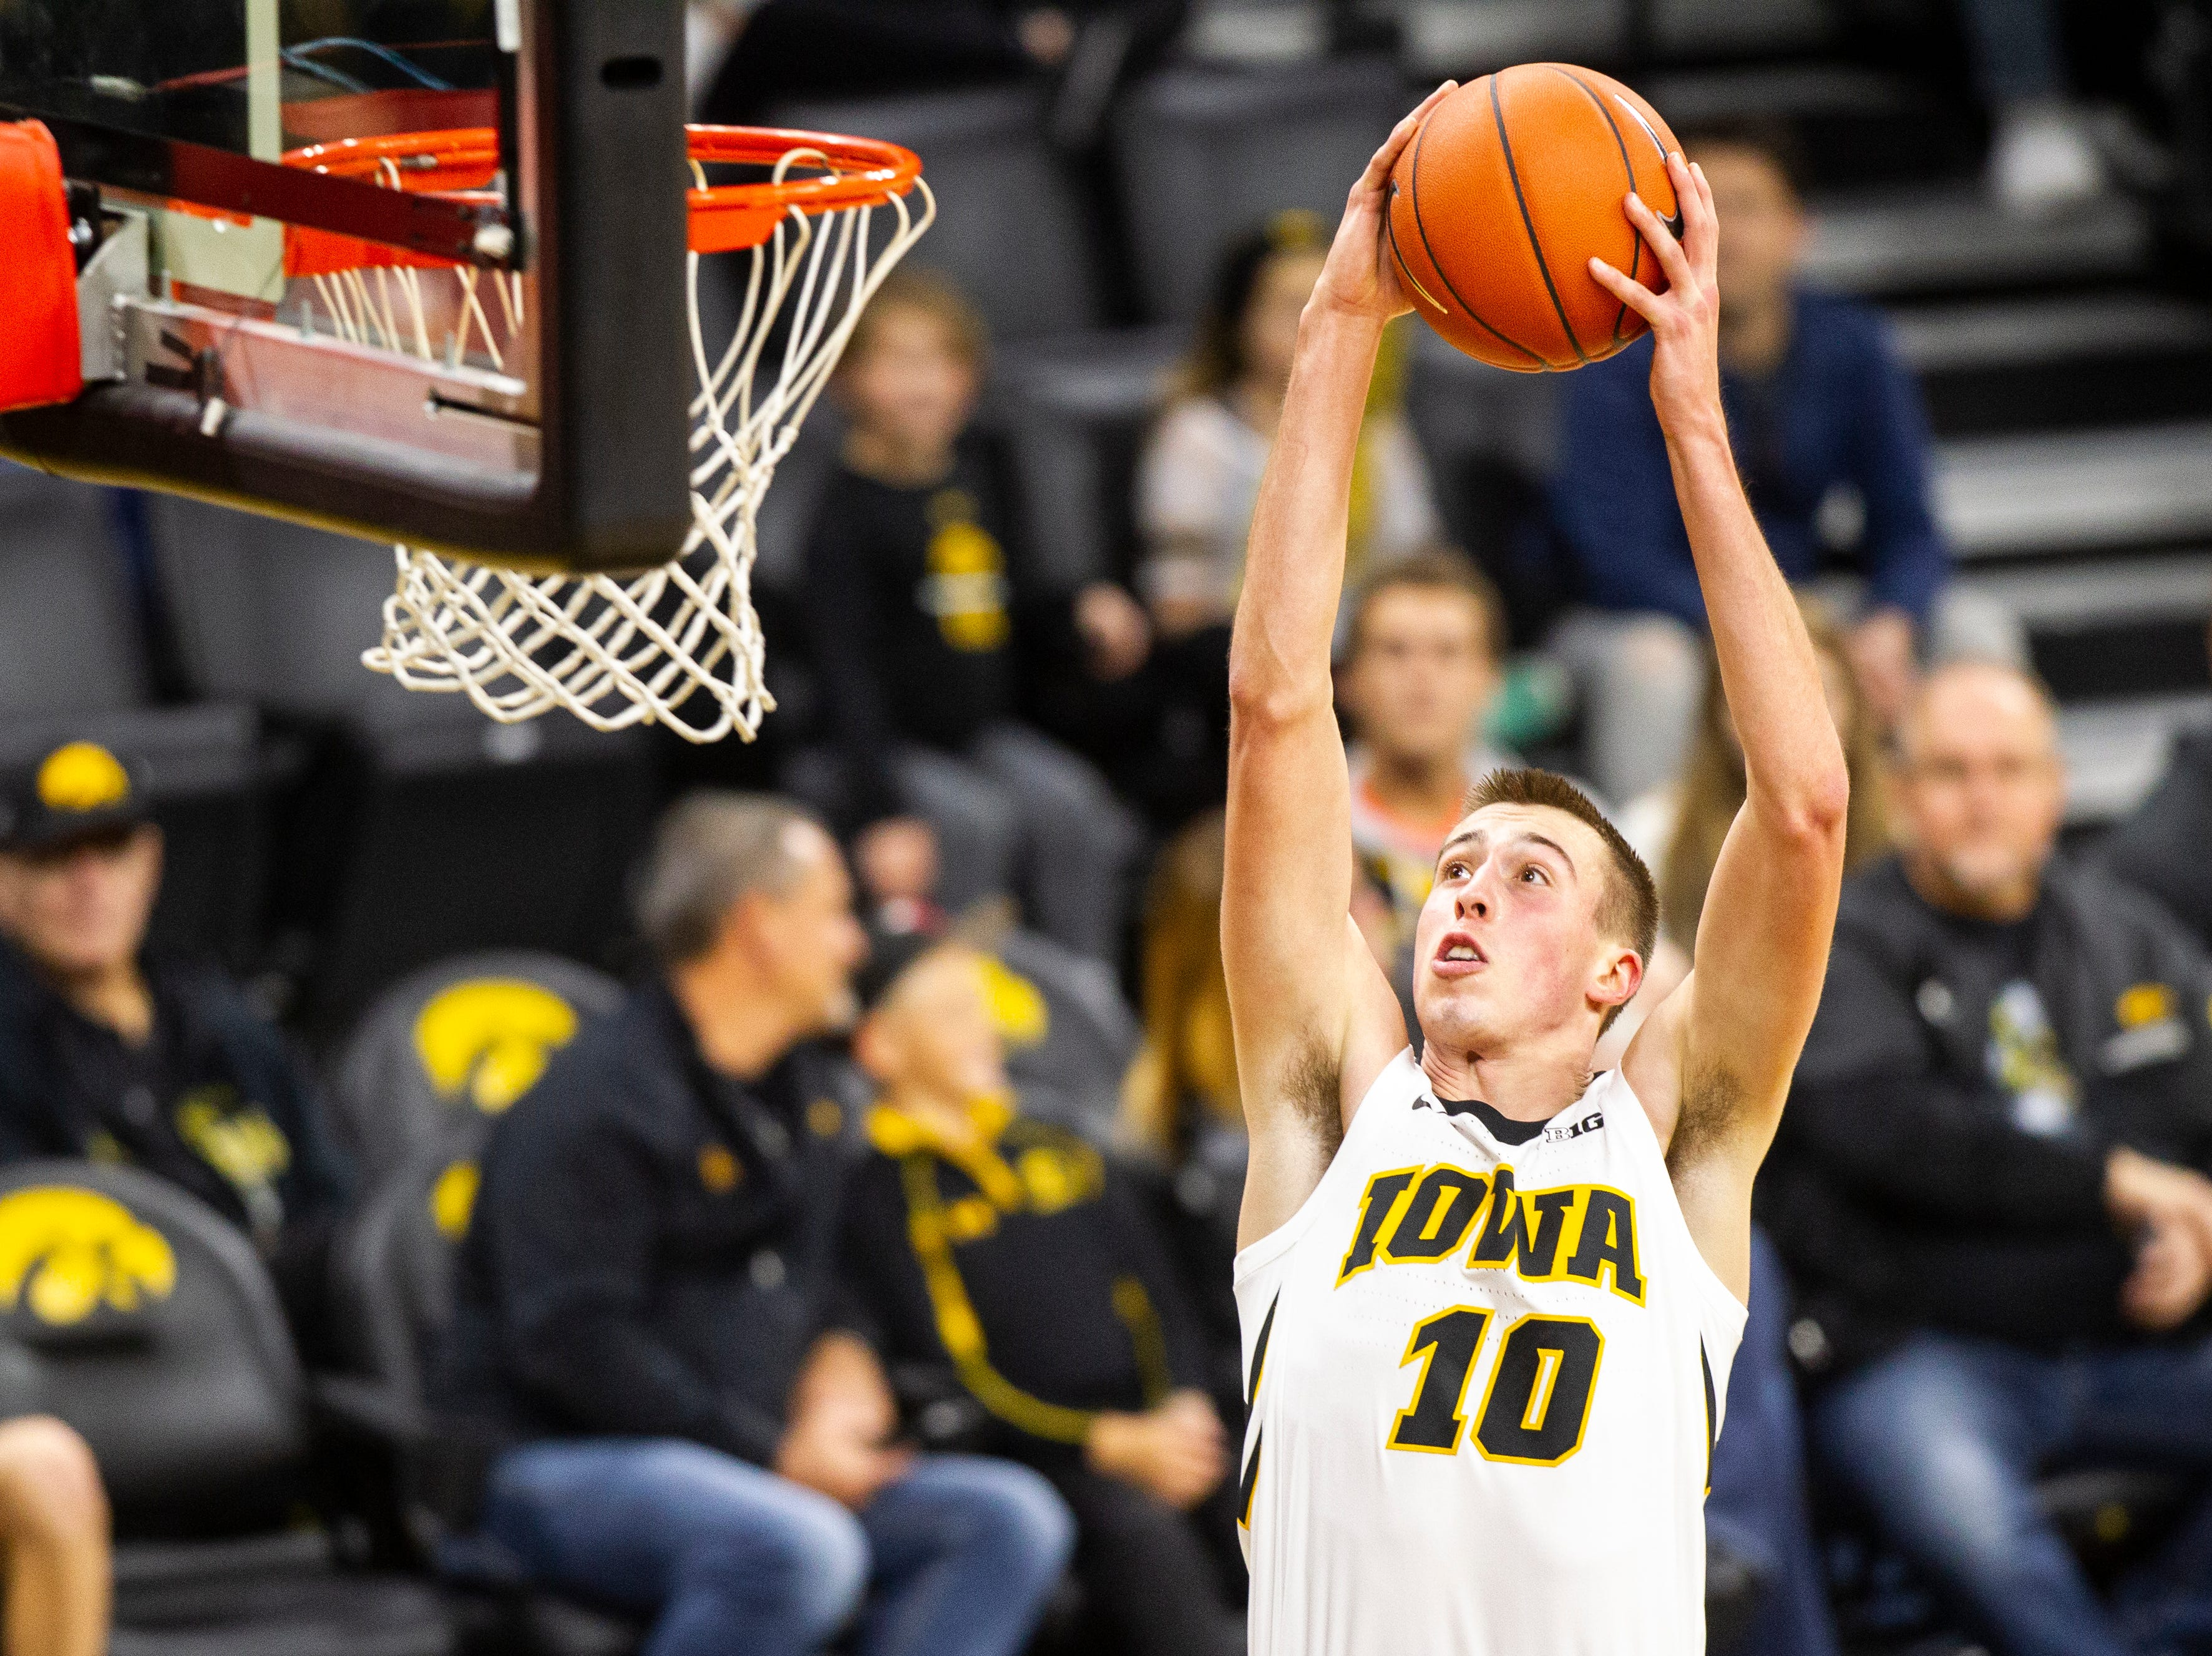 Iowa guard Joe Wieskamp (10) dunks during men's basketball exhibition game on Sunday, Nov. 4, 2018, at Carver-Hawkeye Arena in Iowa City.